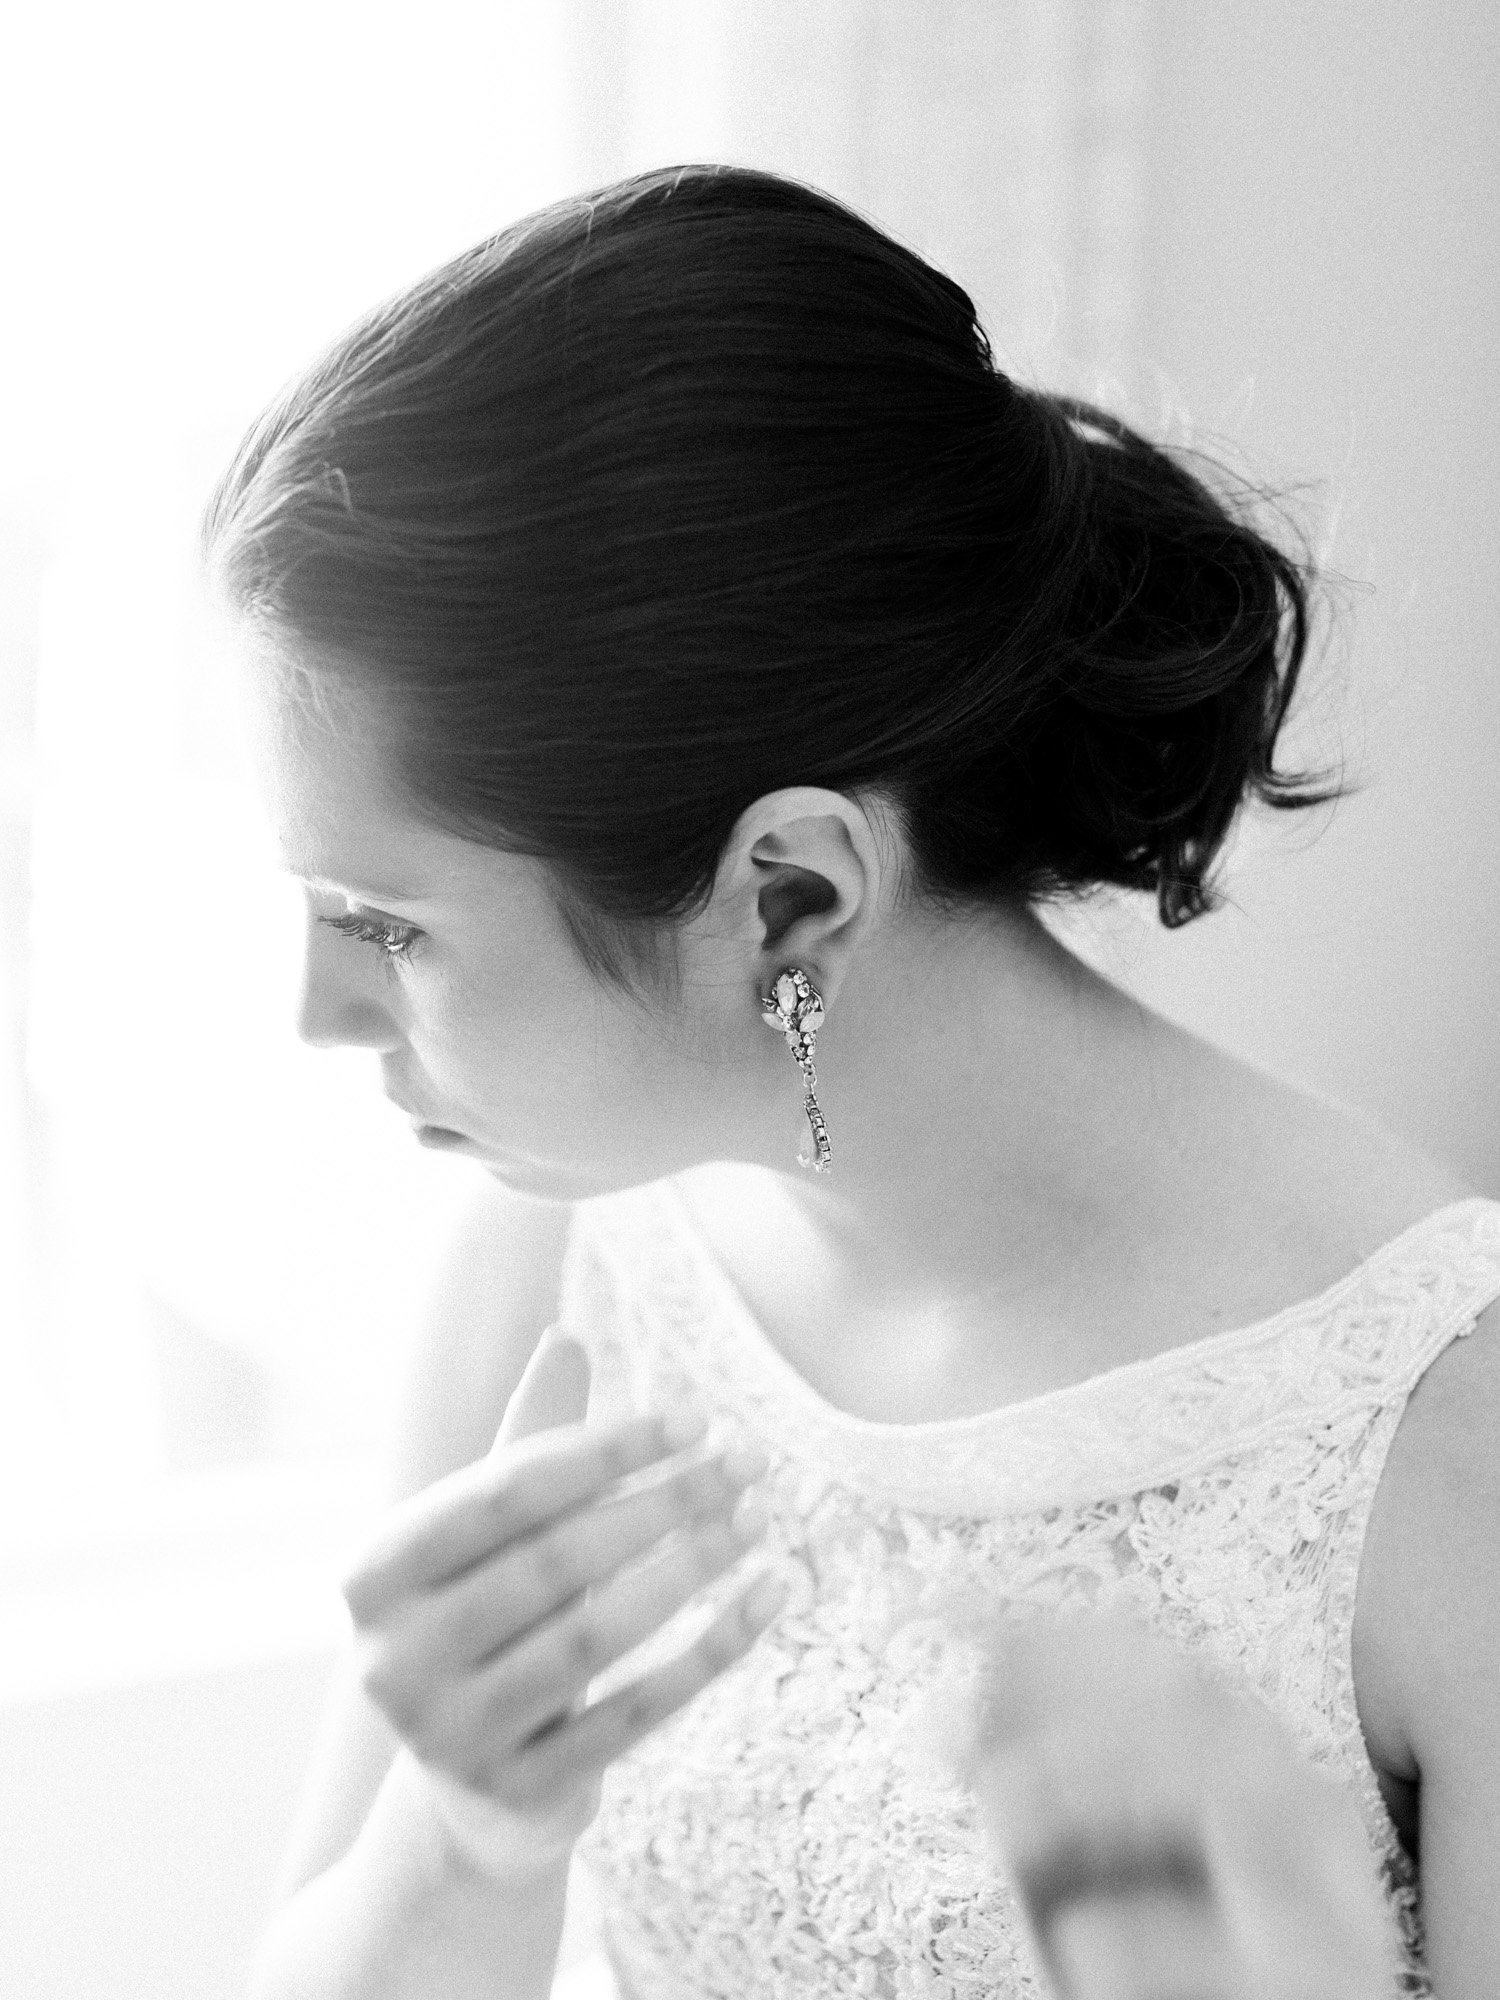 Luminous window light envelops a bride as she fastens her earrings on her wedding day in Ann Arbor, Michigan